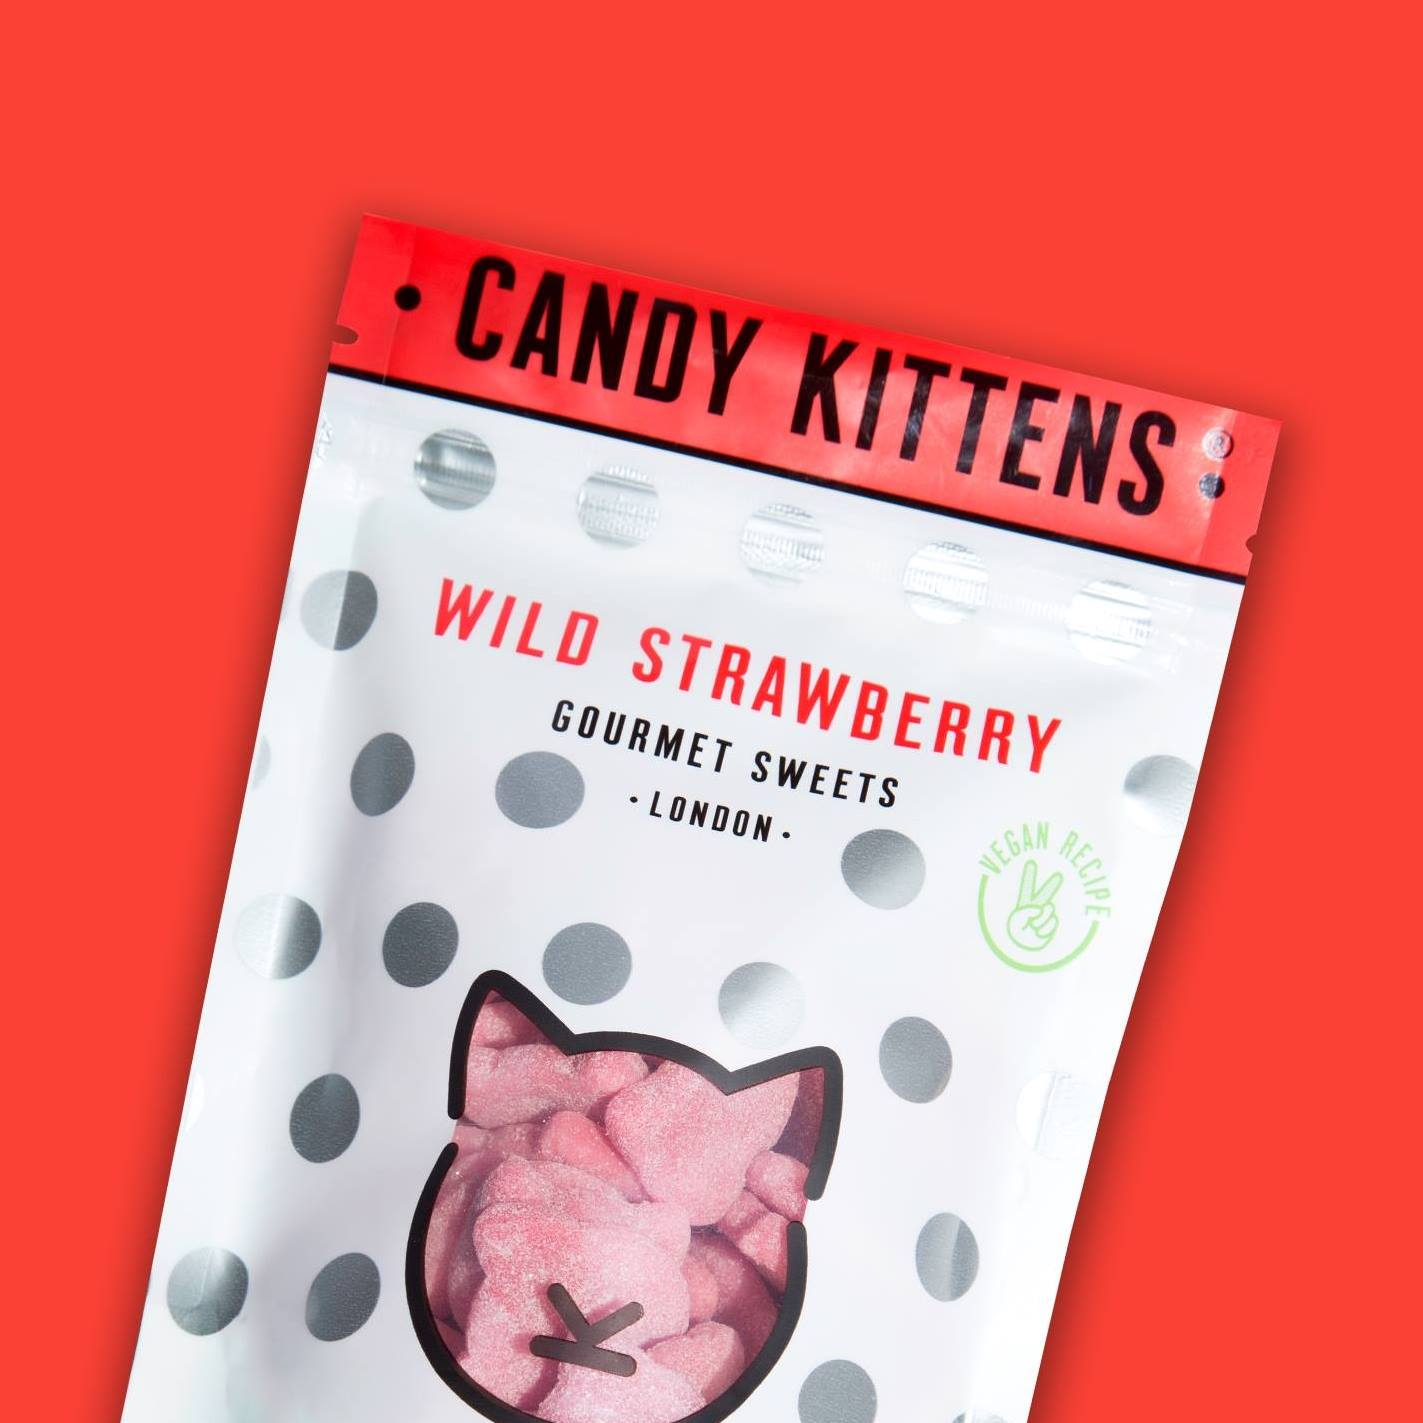 Candy Kittens - An innovative, gourmet sweet range with natural ingredients, and authentic flavours.Vegan options available.